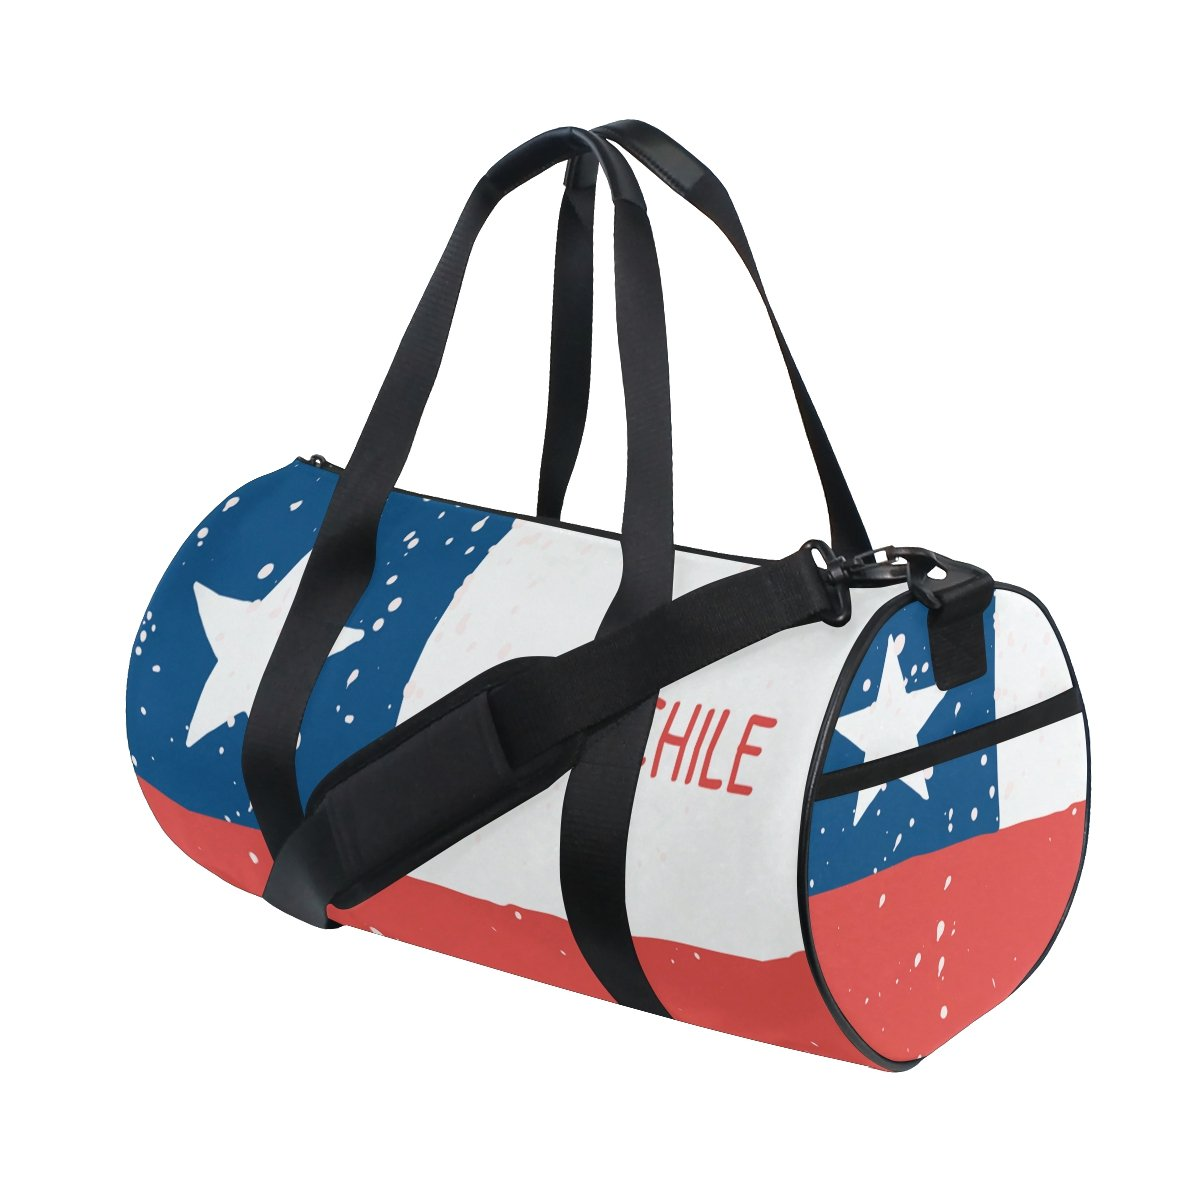 Distressed Chile Flag Travel Duffel Shoulder Bag ,Sports Gym Fitness Bags by super3Dprinted